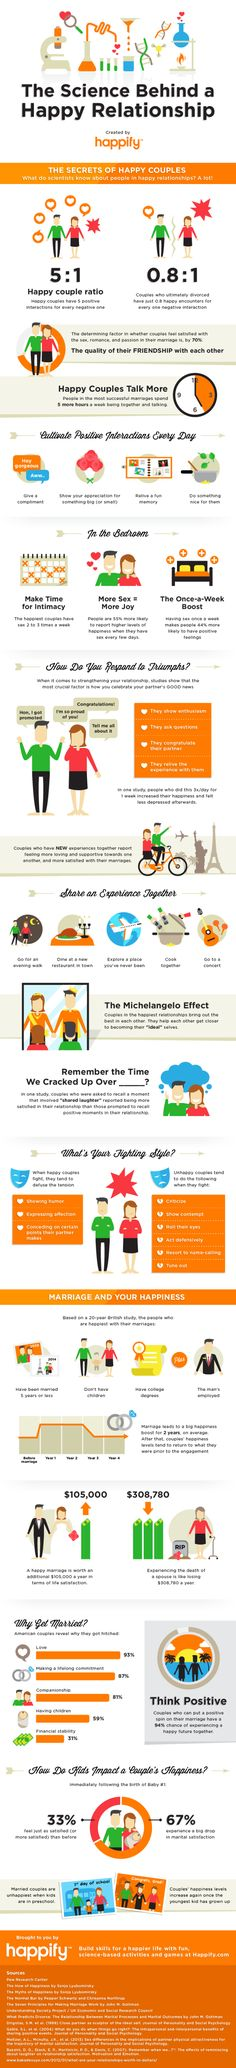 The Science Behind a Happy Relationship: 21 Insightful Facts!